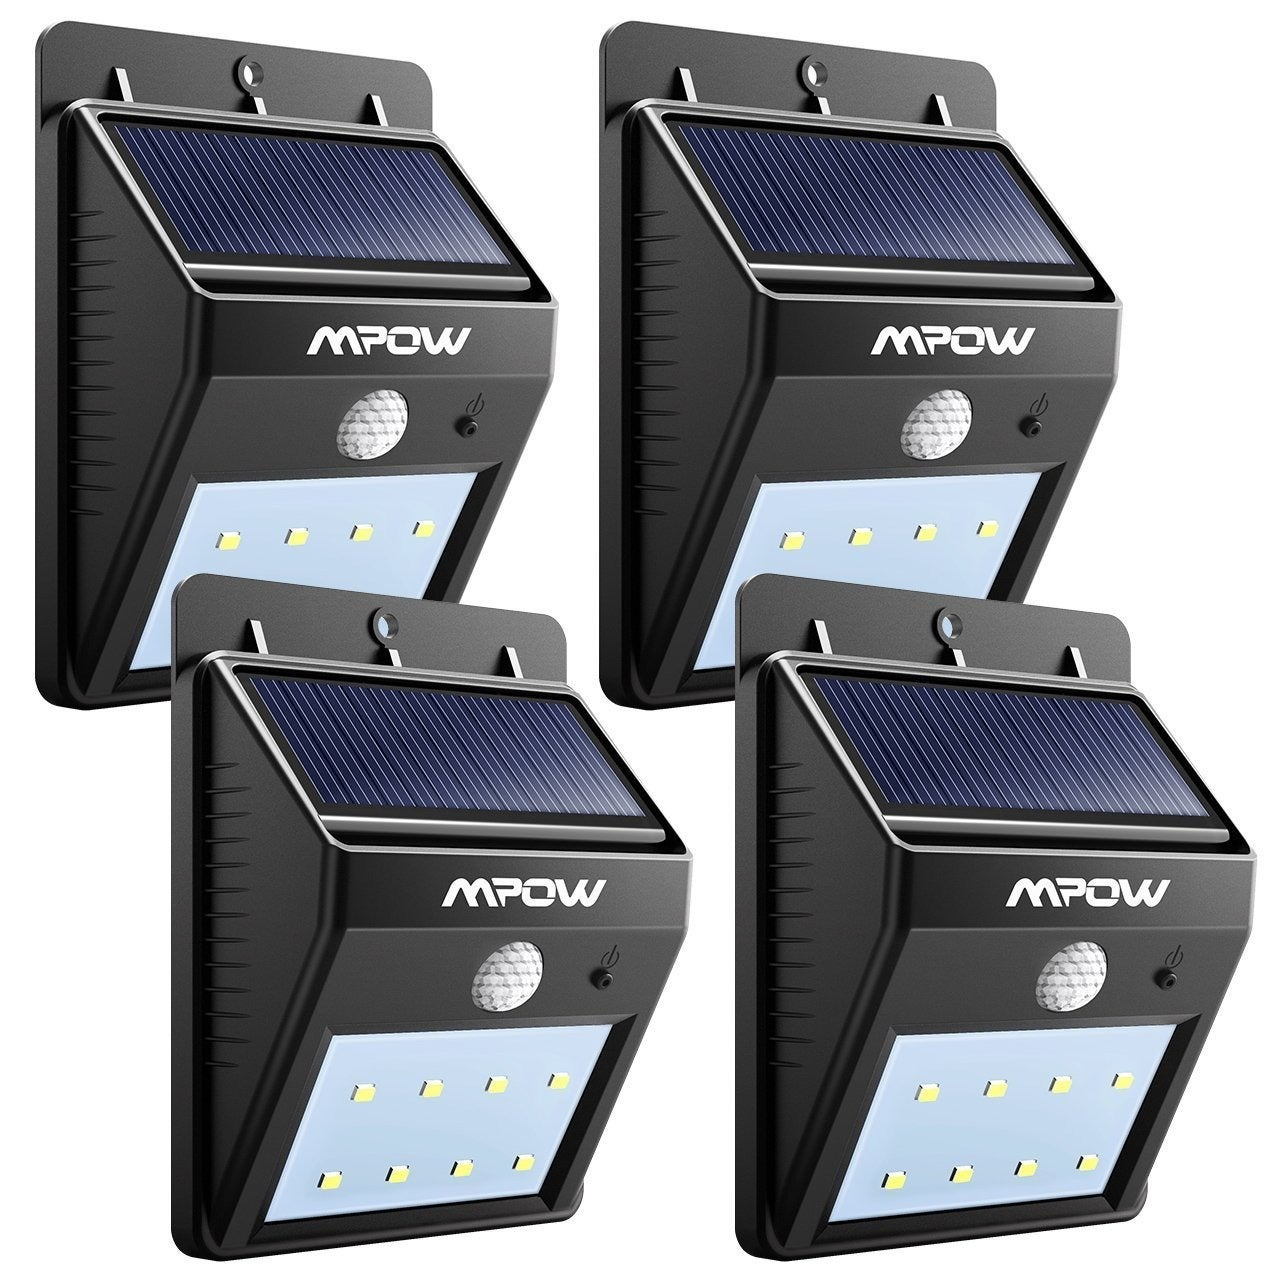 Mpow Black Plastic Solar-powered Wireless Security Motion...